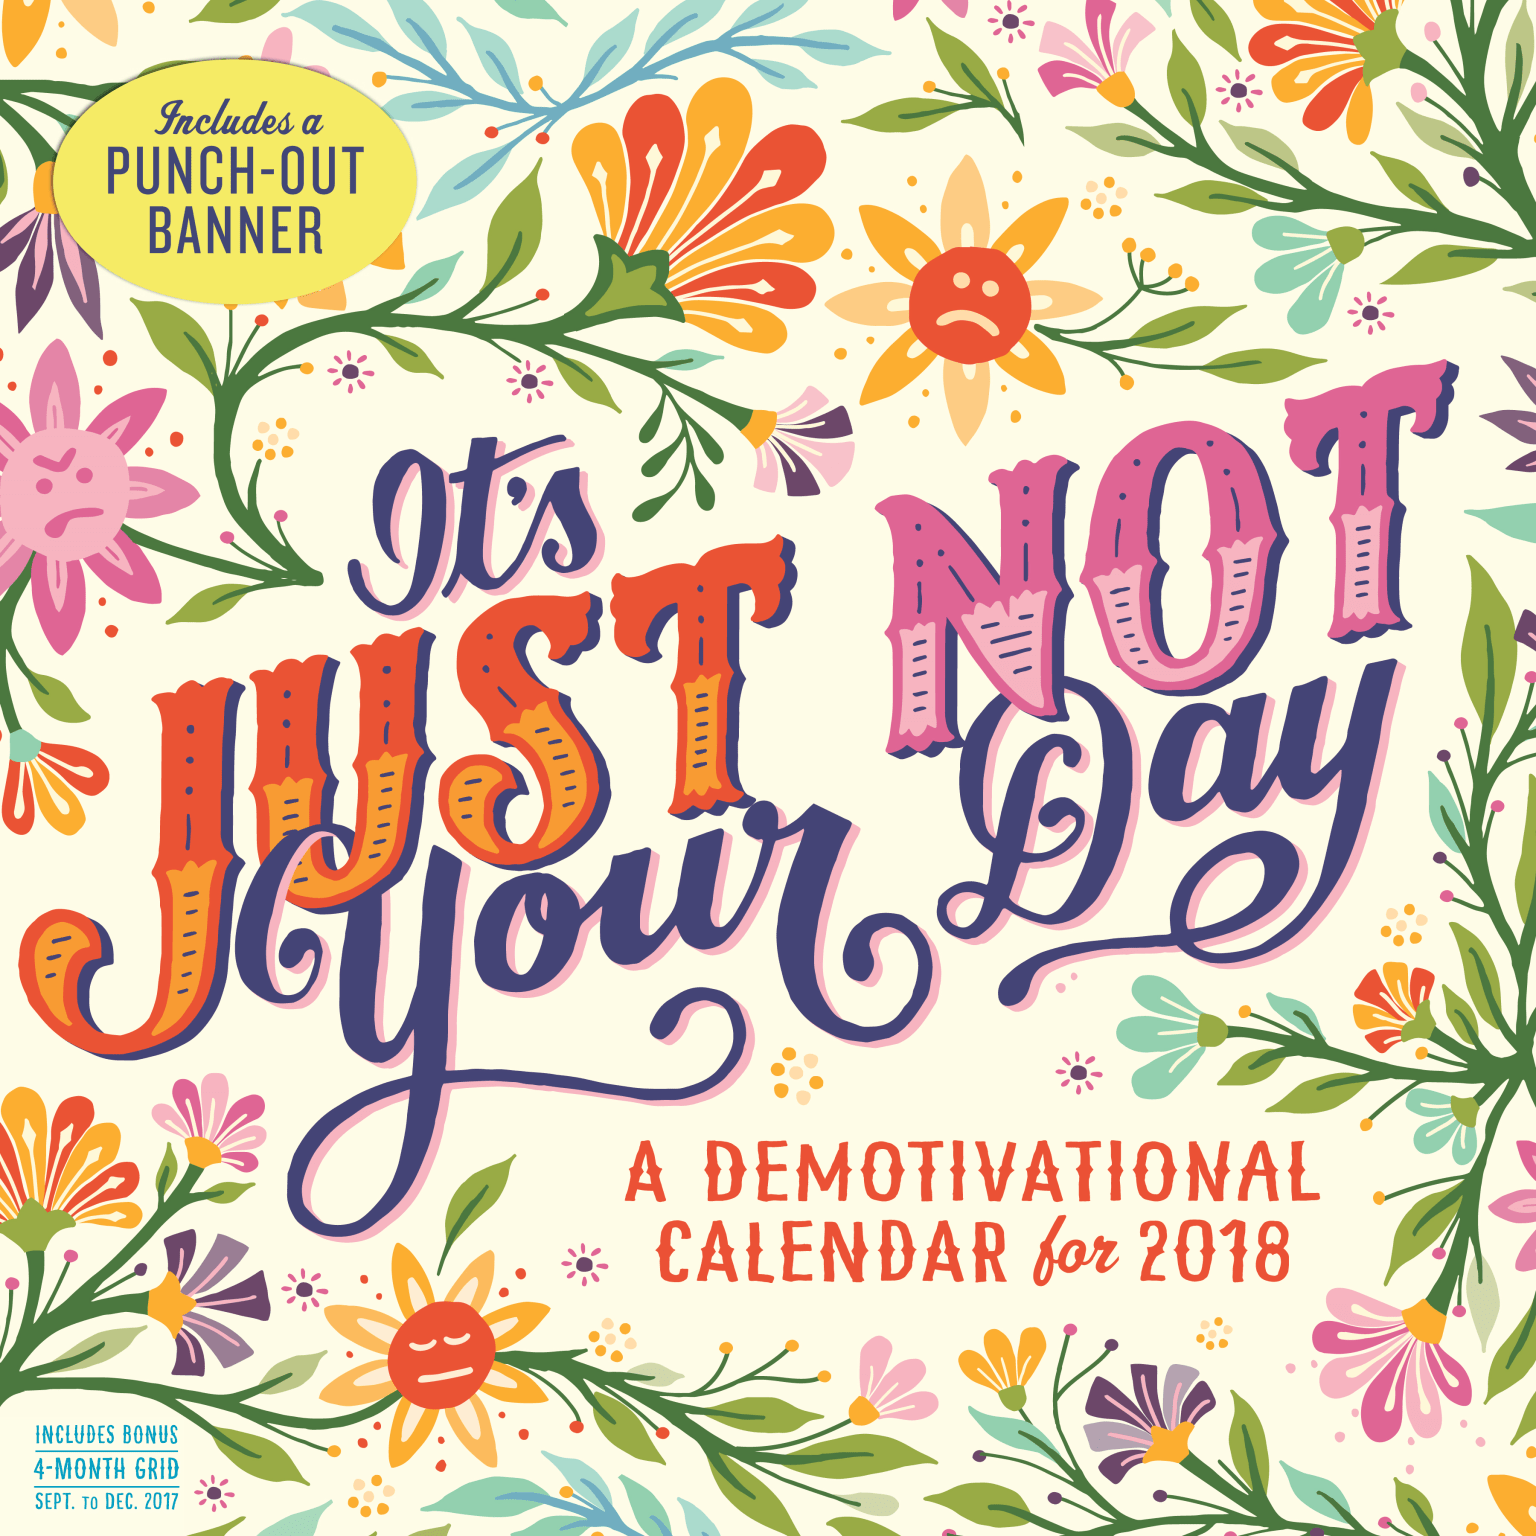 It's Just Not Your Day | Calendar Cover